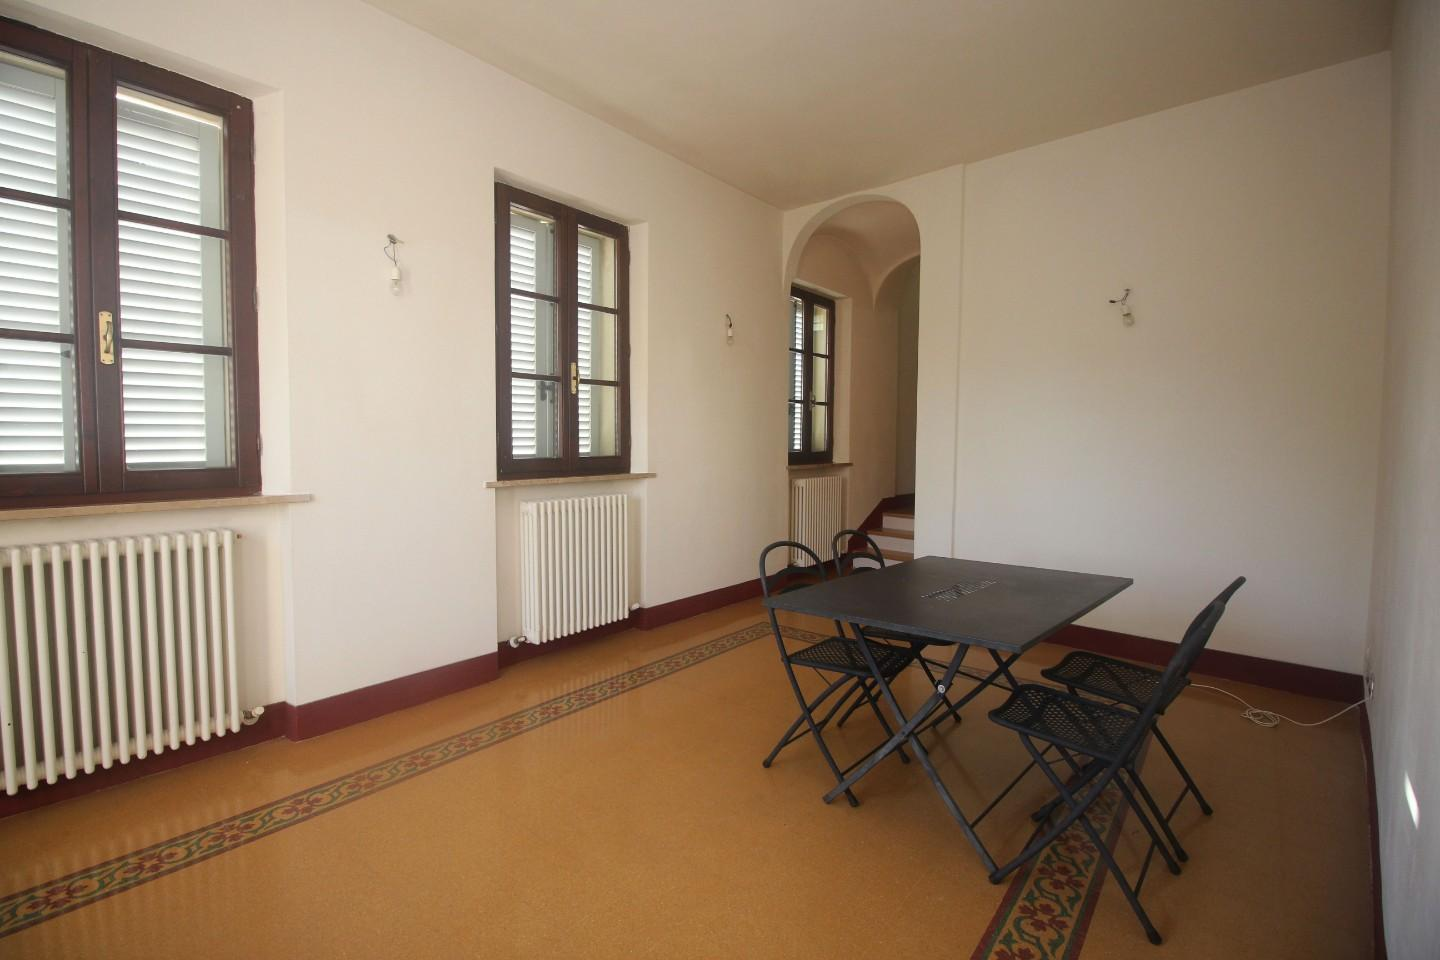 Semi-detached house for rent in Costalpino, Siena